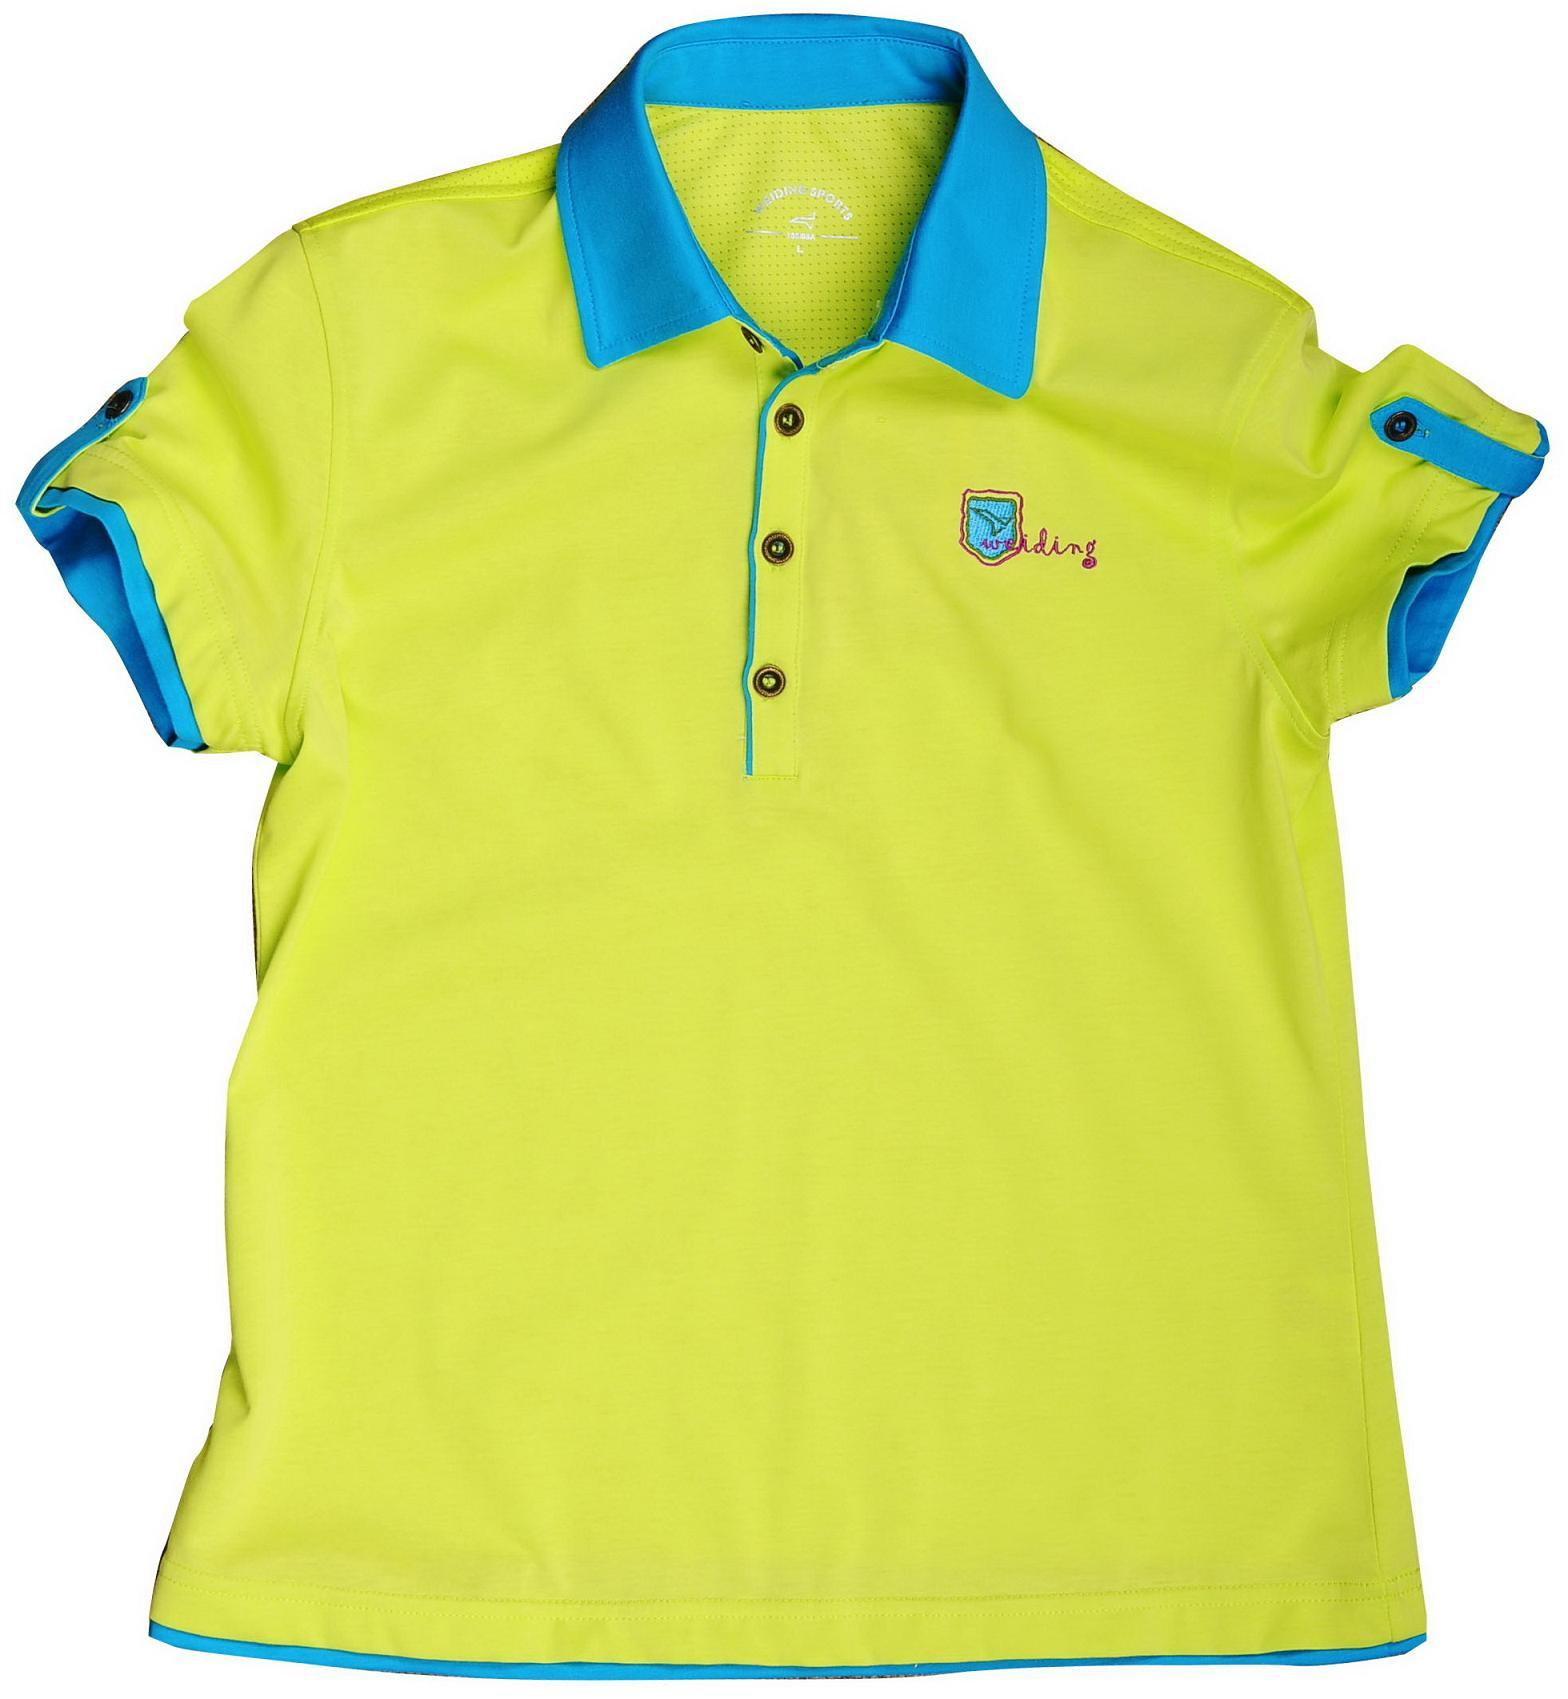 Ladies′ Breathable T-Shirt Make of Polyester/Spandex